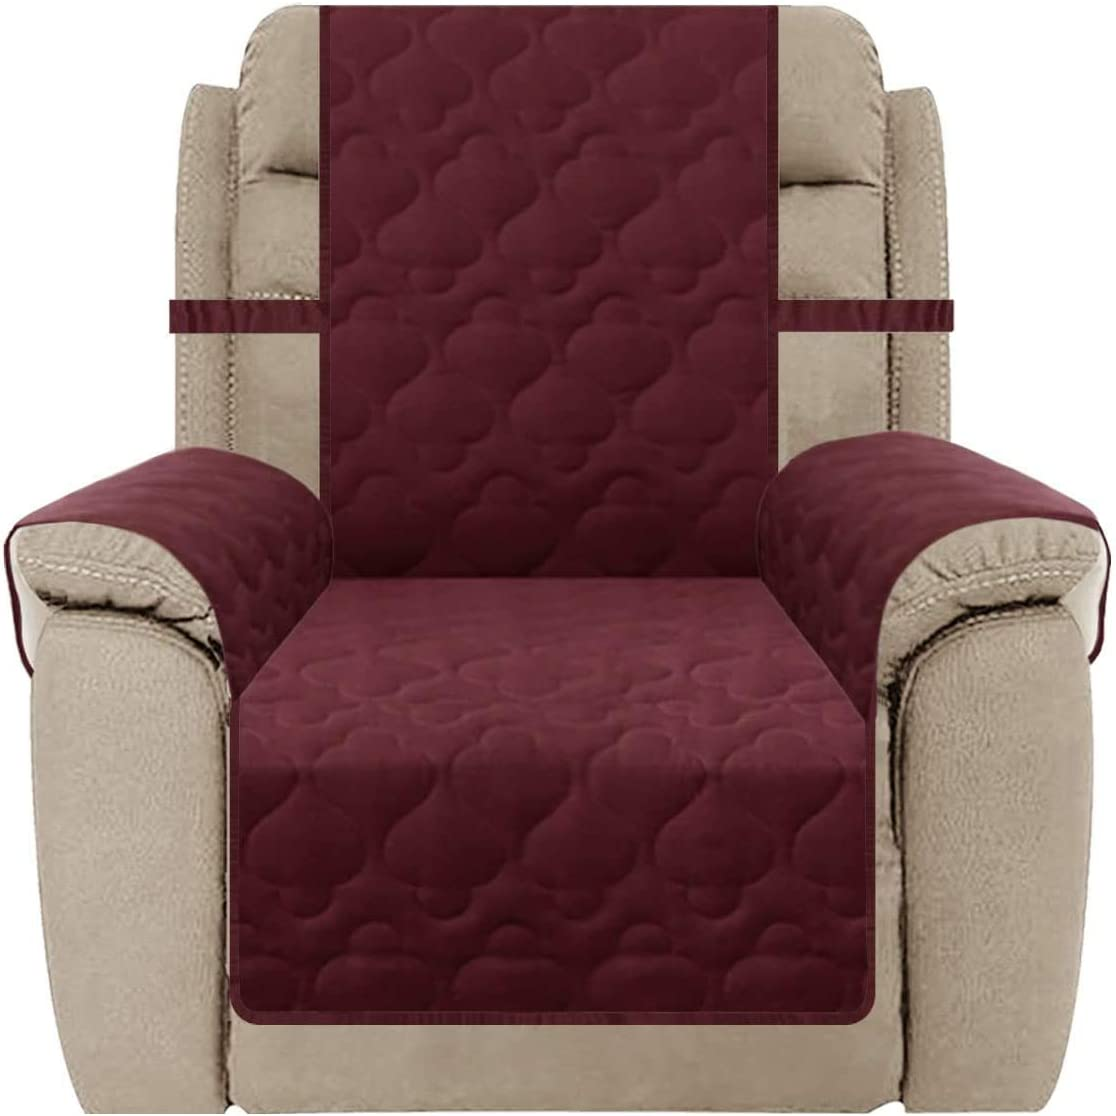 Waterproof Recliner Slipcover Non-Slip Cover Pr Couch OFFicial New color shop Furniture